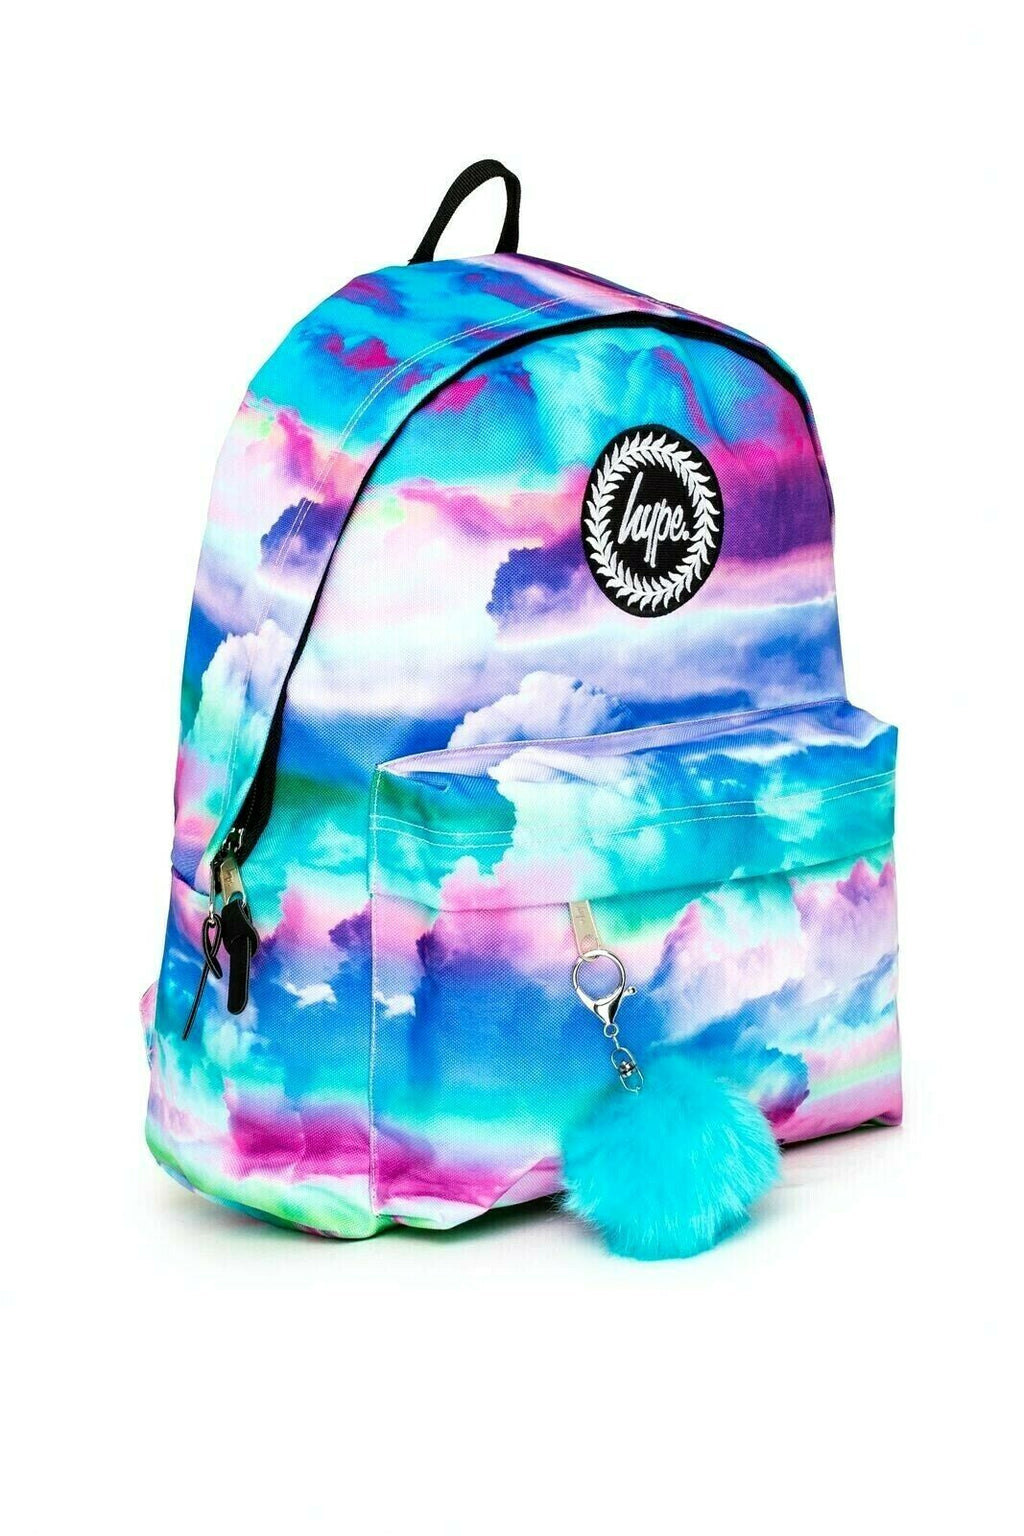 Cloud Hues Backpack